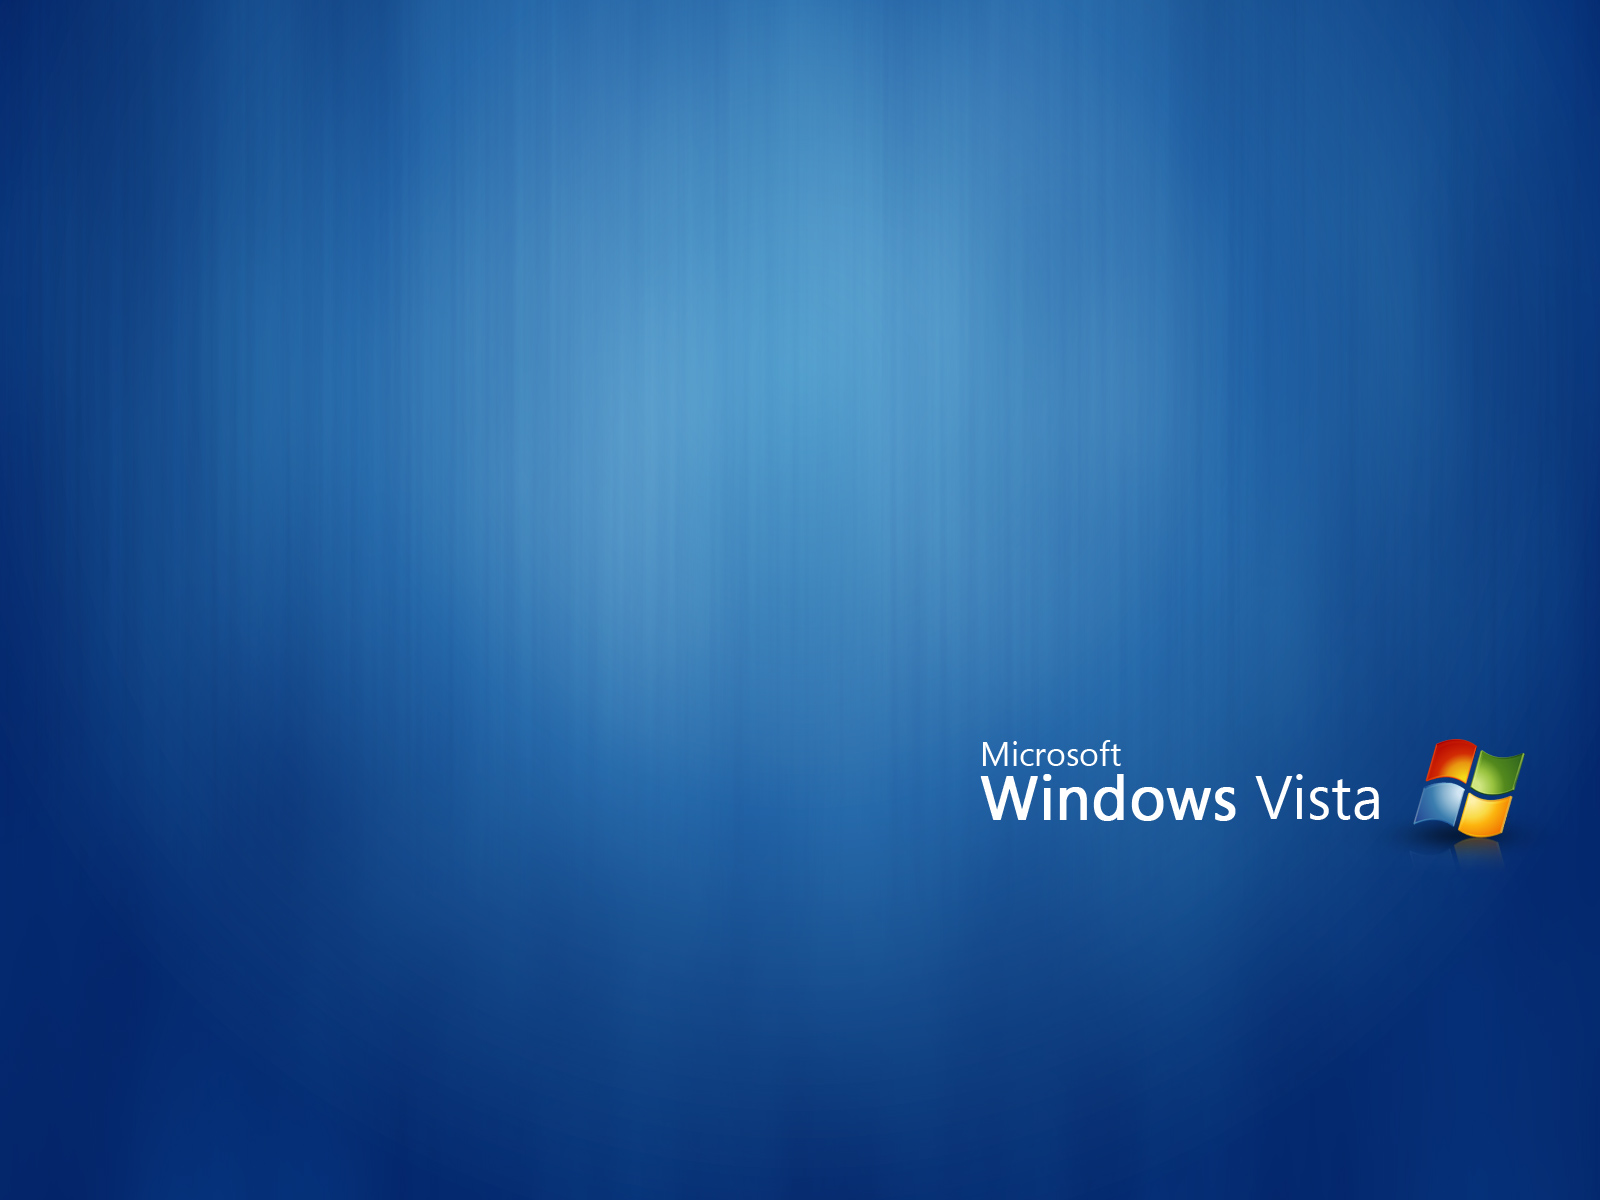 vista wallpapers � vista home windows vista wallpapers